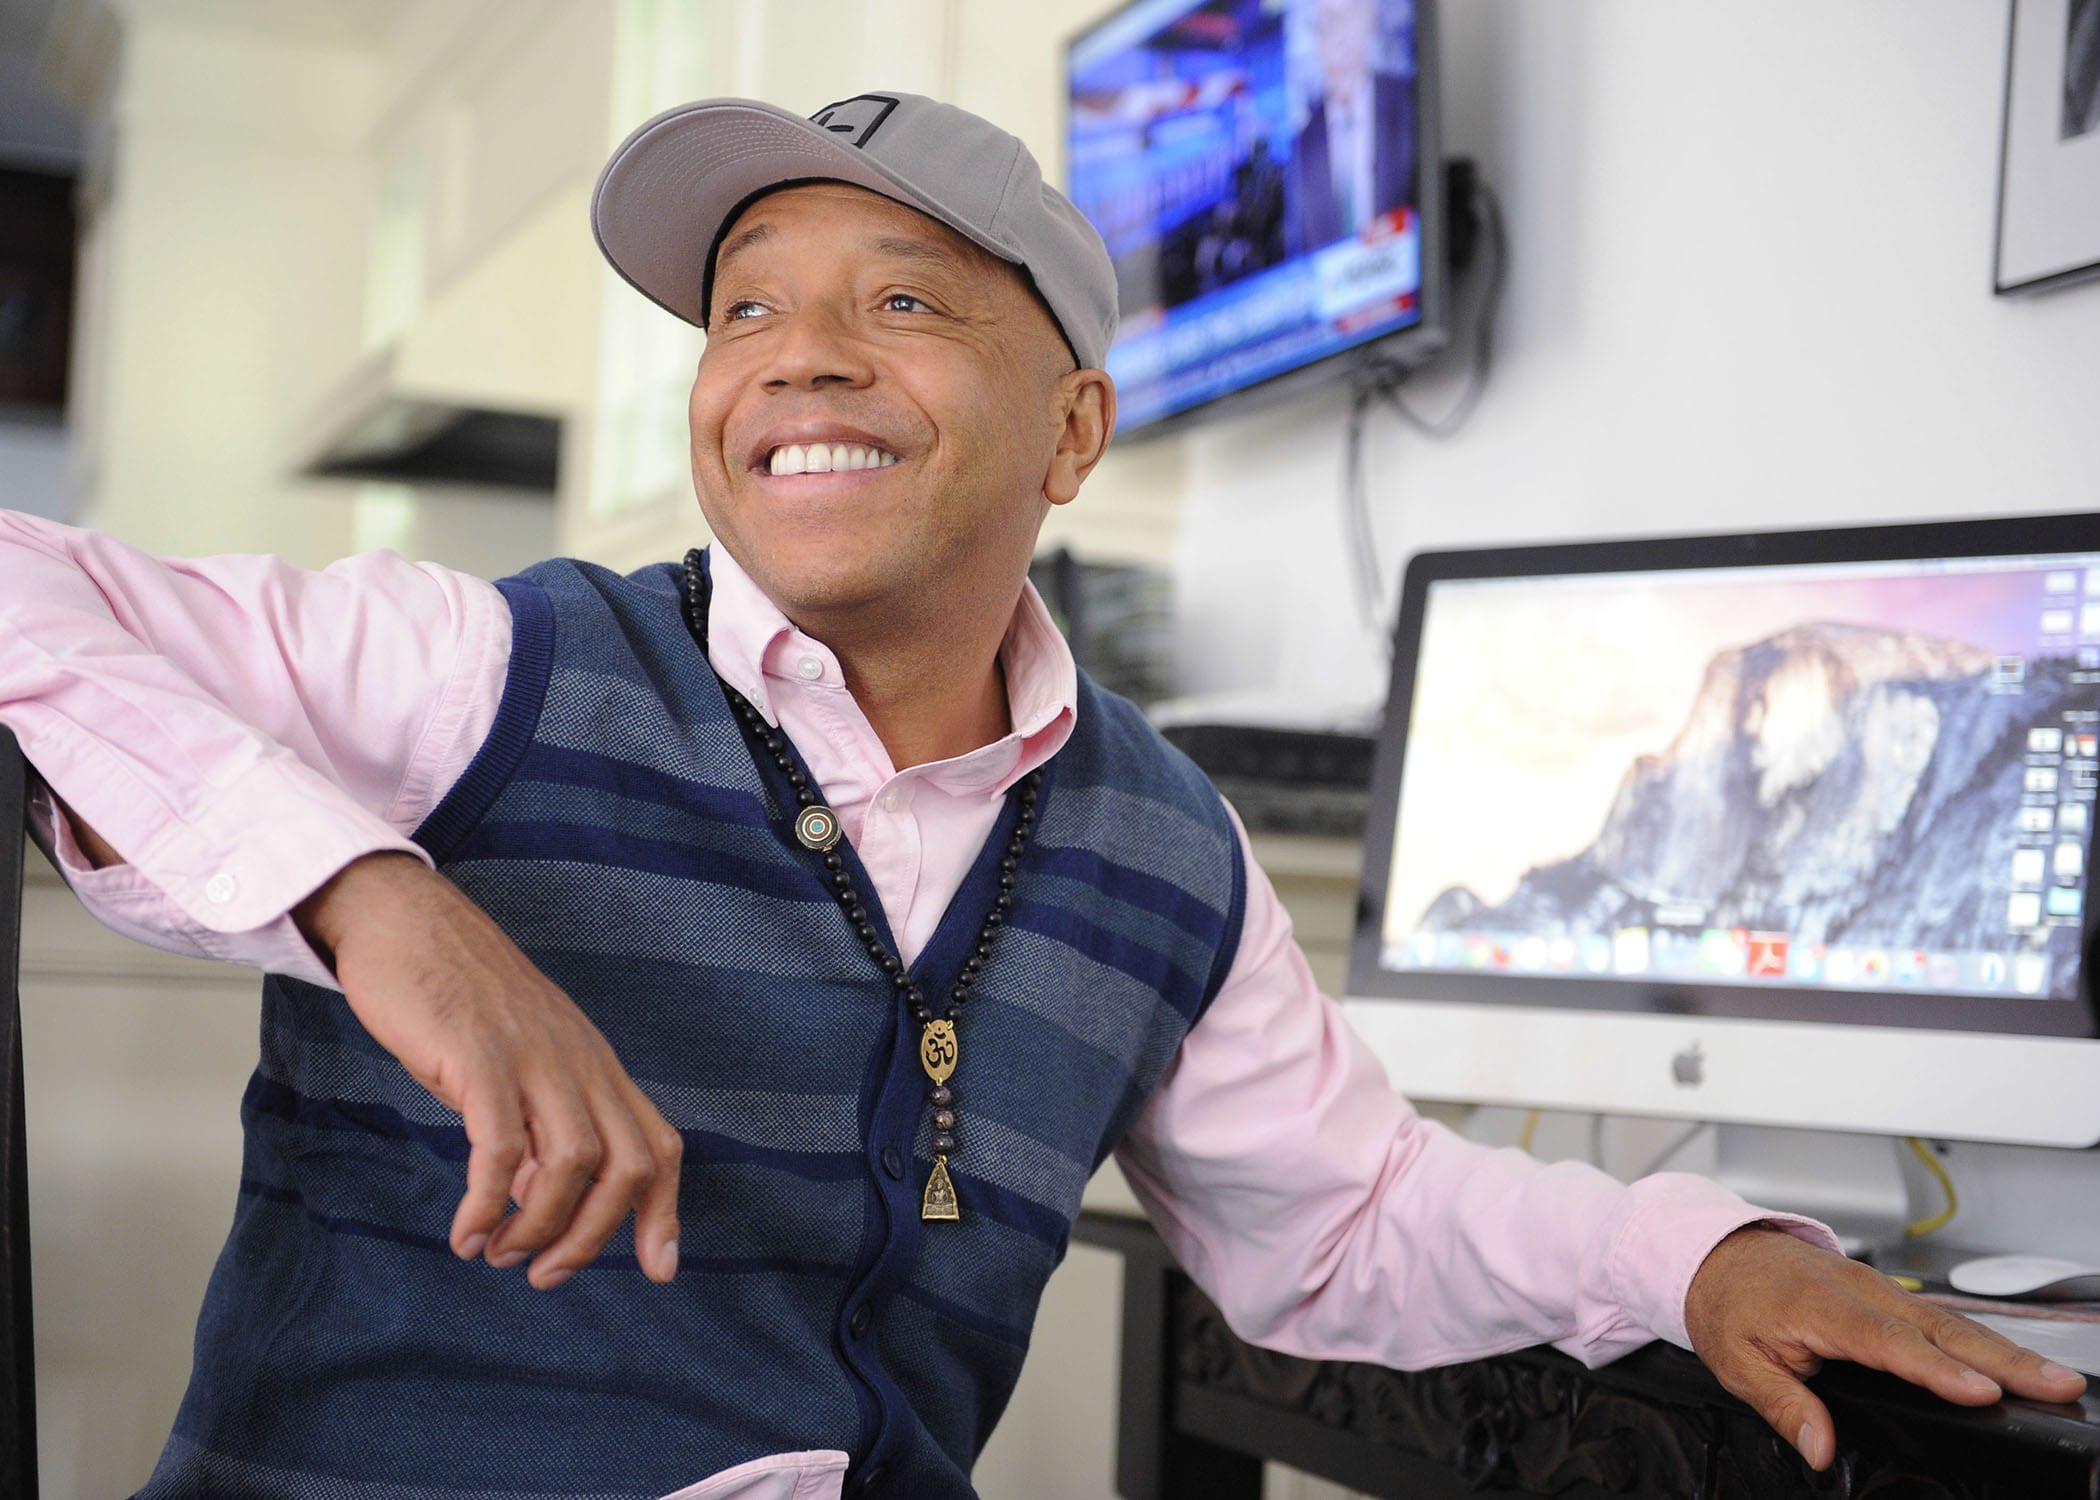 Russell Simmons Speaks Out on RushCard Glitch